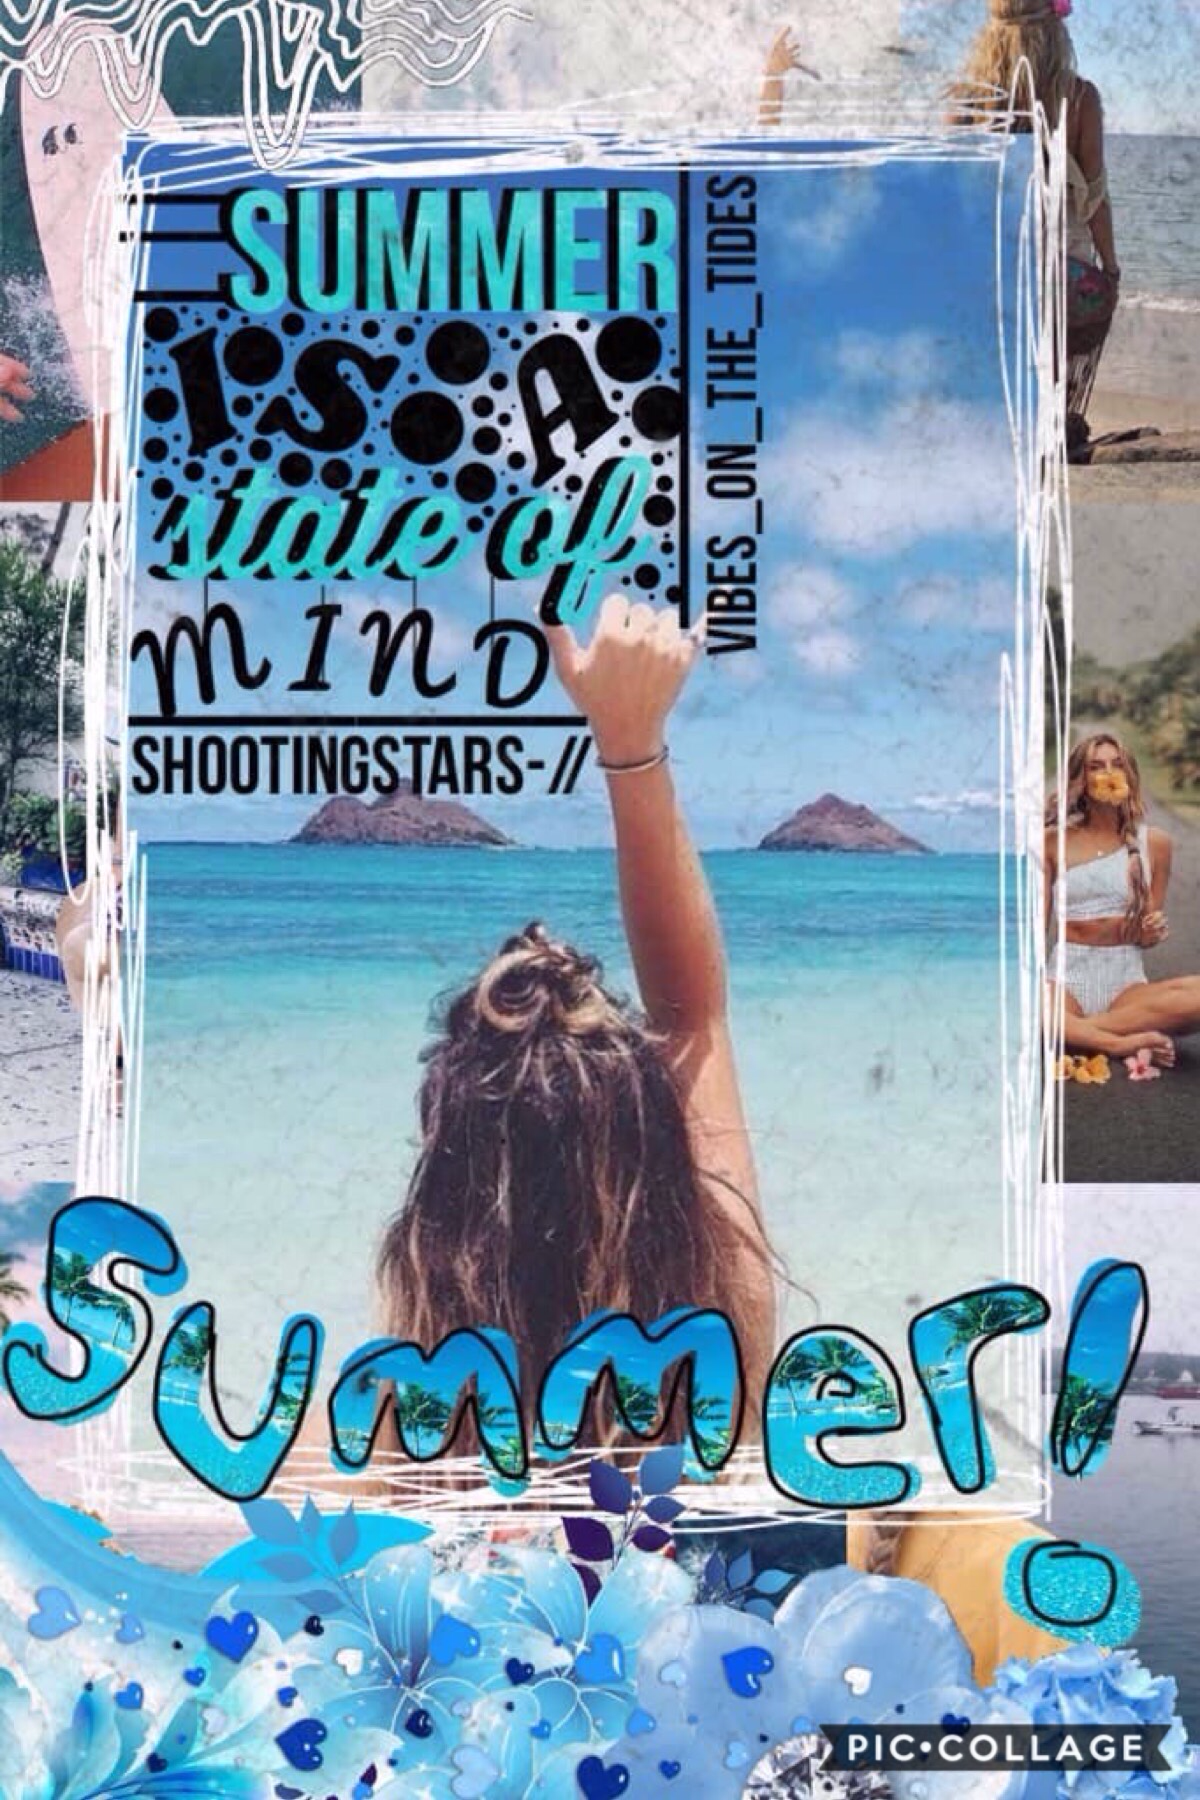 💕collab with💕  -shootingstars-!! she is  the best! 🌊🌸she also put it all together!! go follow her if you haven't already!!